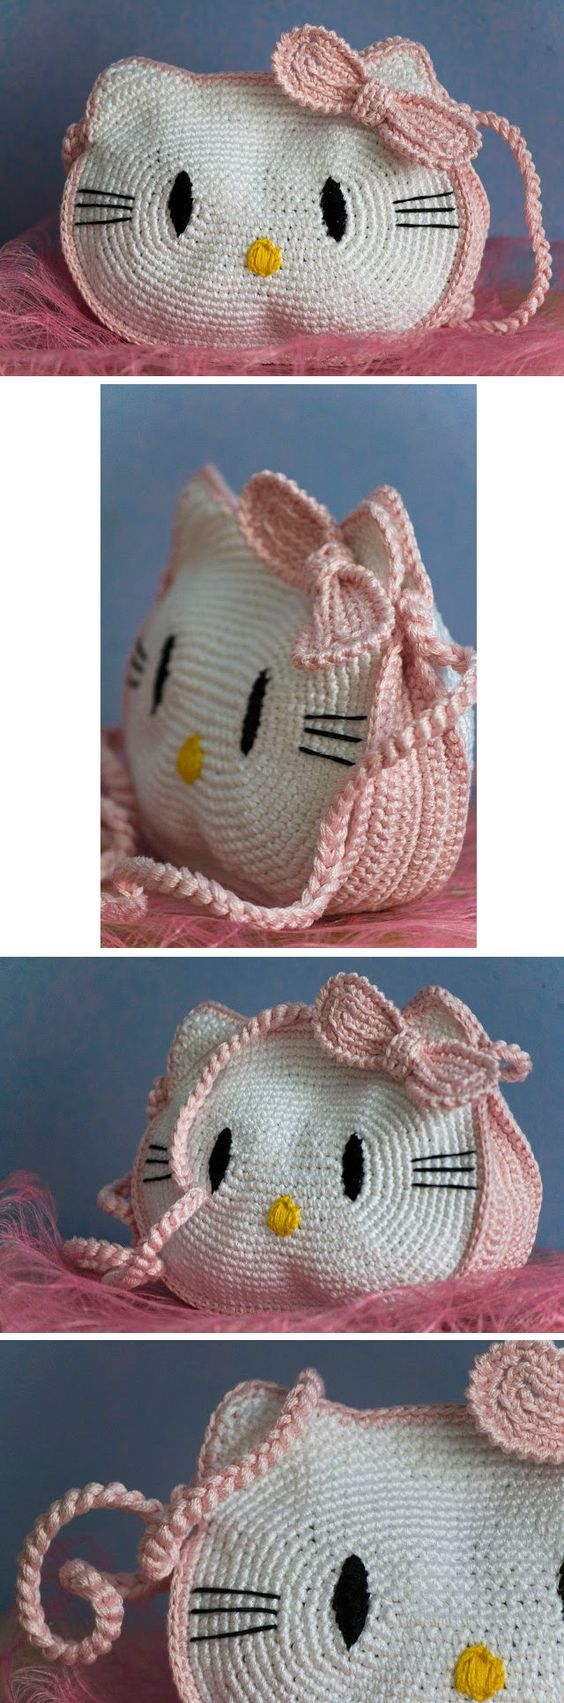 Hello Kitty bag - *Inspiration* It looks pretty easy if you break it down, 2 large ovals, add ears, sides and bow made in pink and all stitched together in the same pink with a pink strap. You could embroider on the facial features or glue on felt.